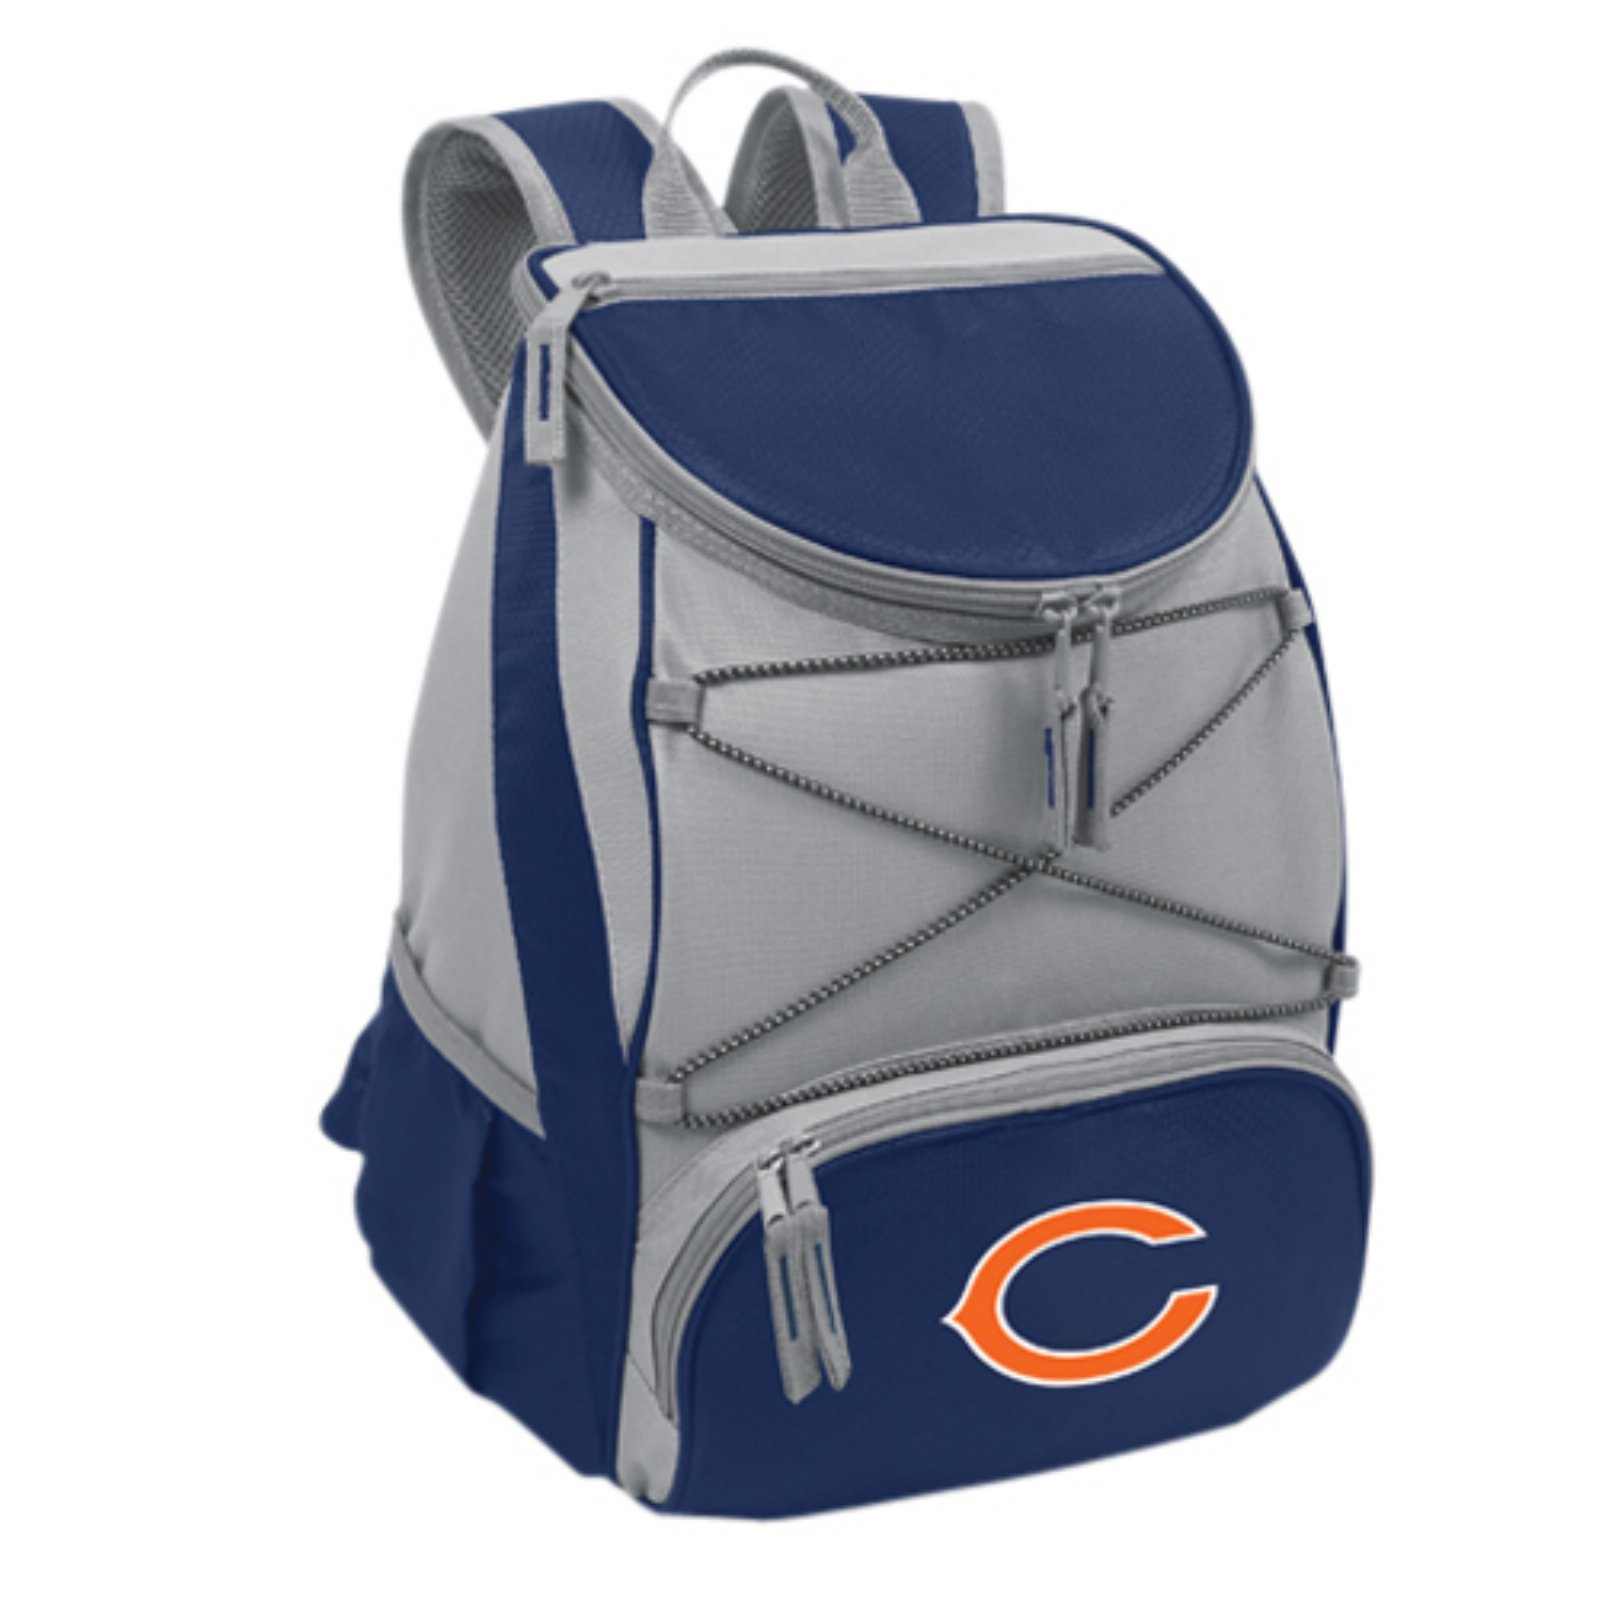 Picnic Time PTX Cooler, Navy Chicago Bears Digital Print